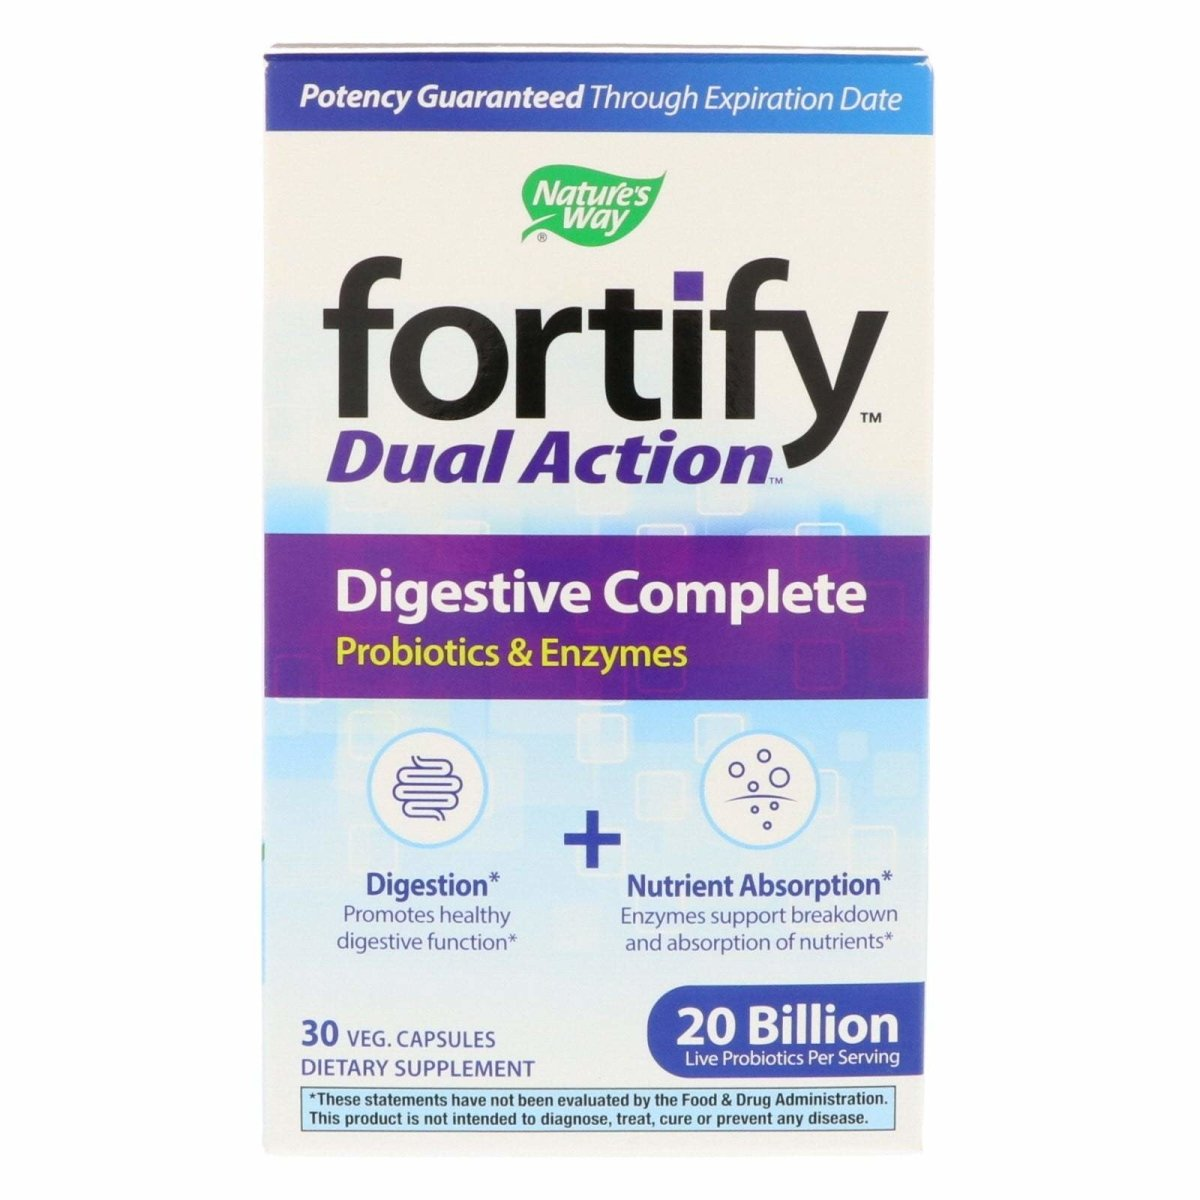 Nature's Way Fortify Dual Action Digestive Complete 20 Billion Live Probiotic 30 Vegetarian Capsules